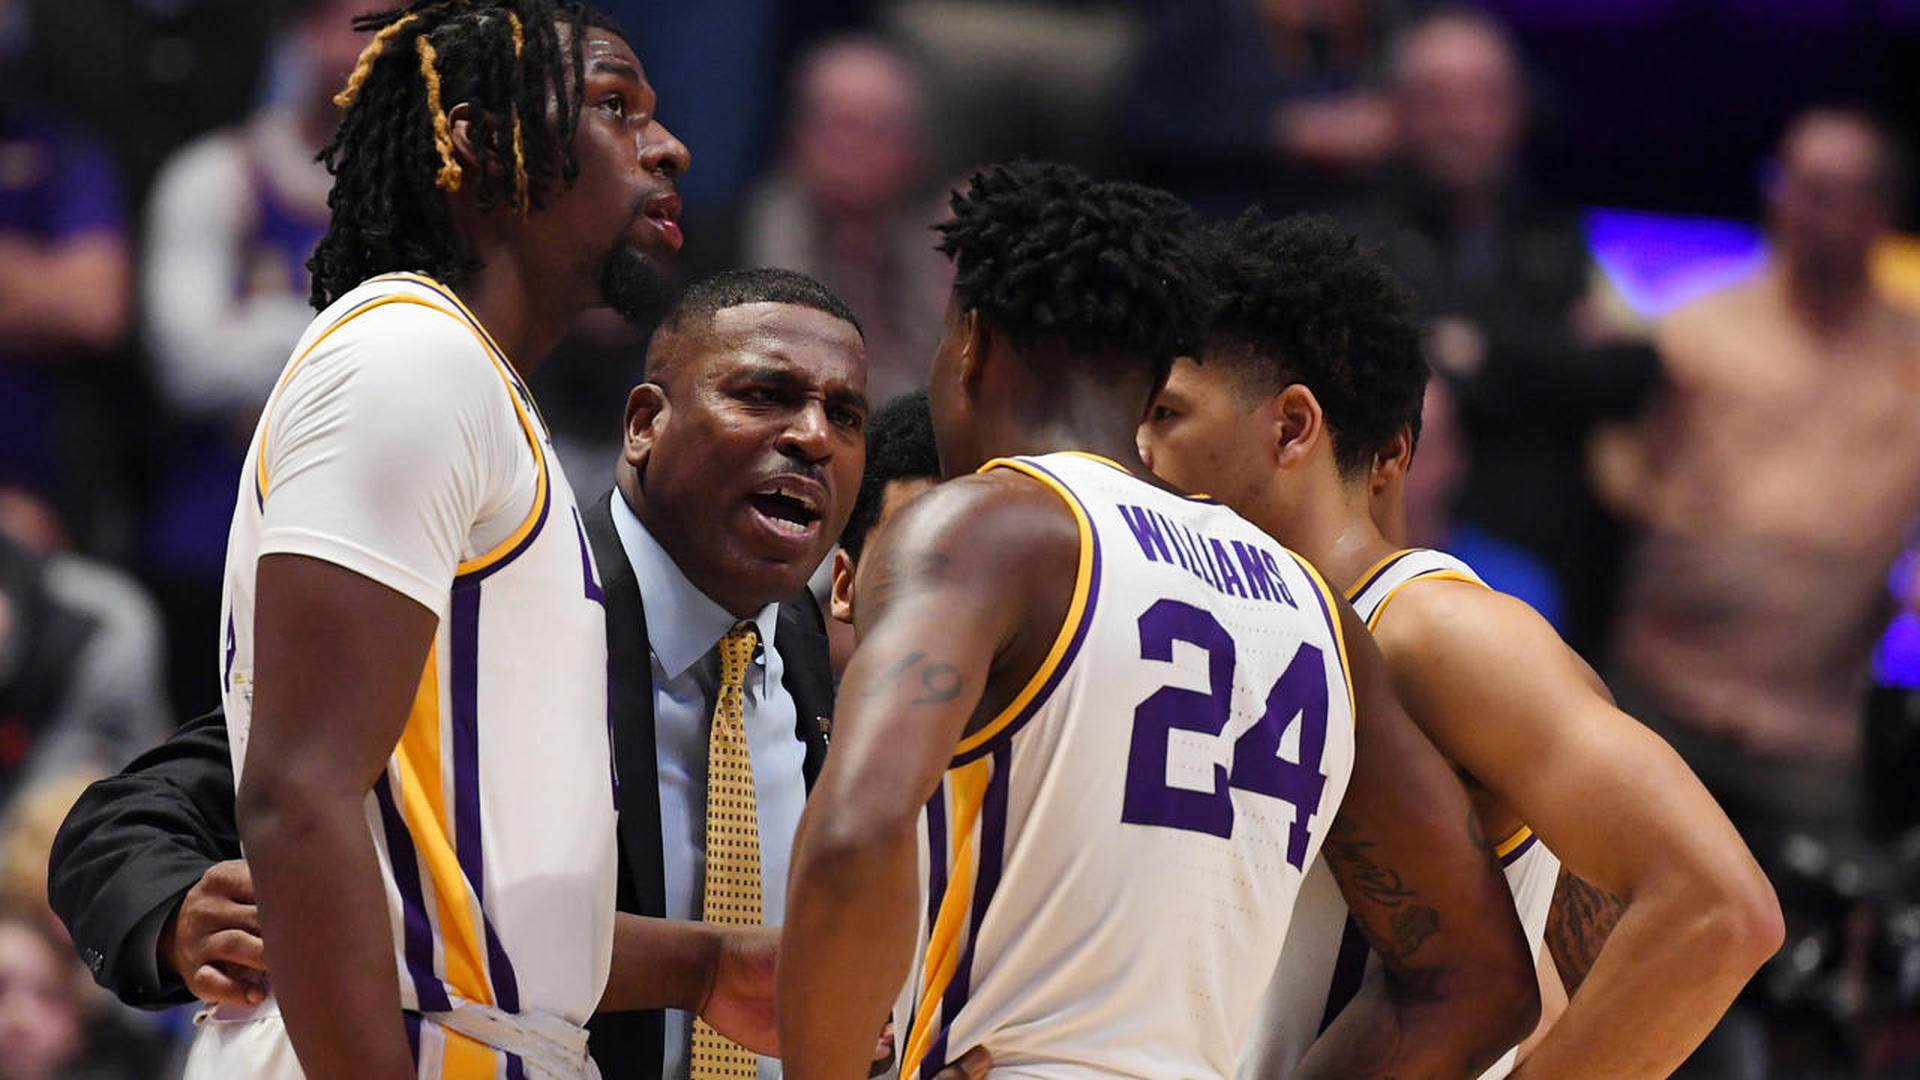 2019 NCAA Tournament: LSU vs. Yale odds, picks, predictions from model on 11-5 run